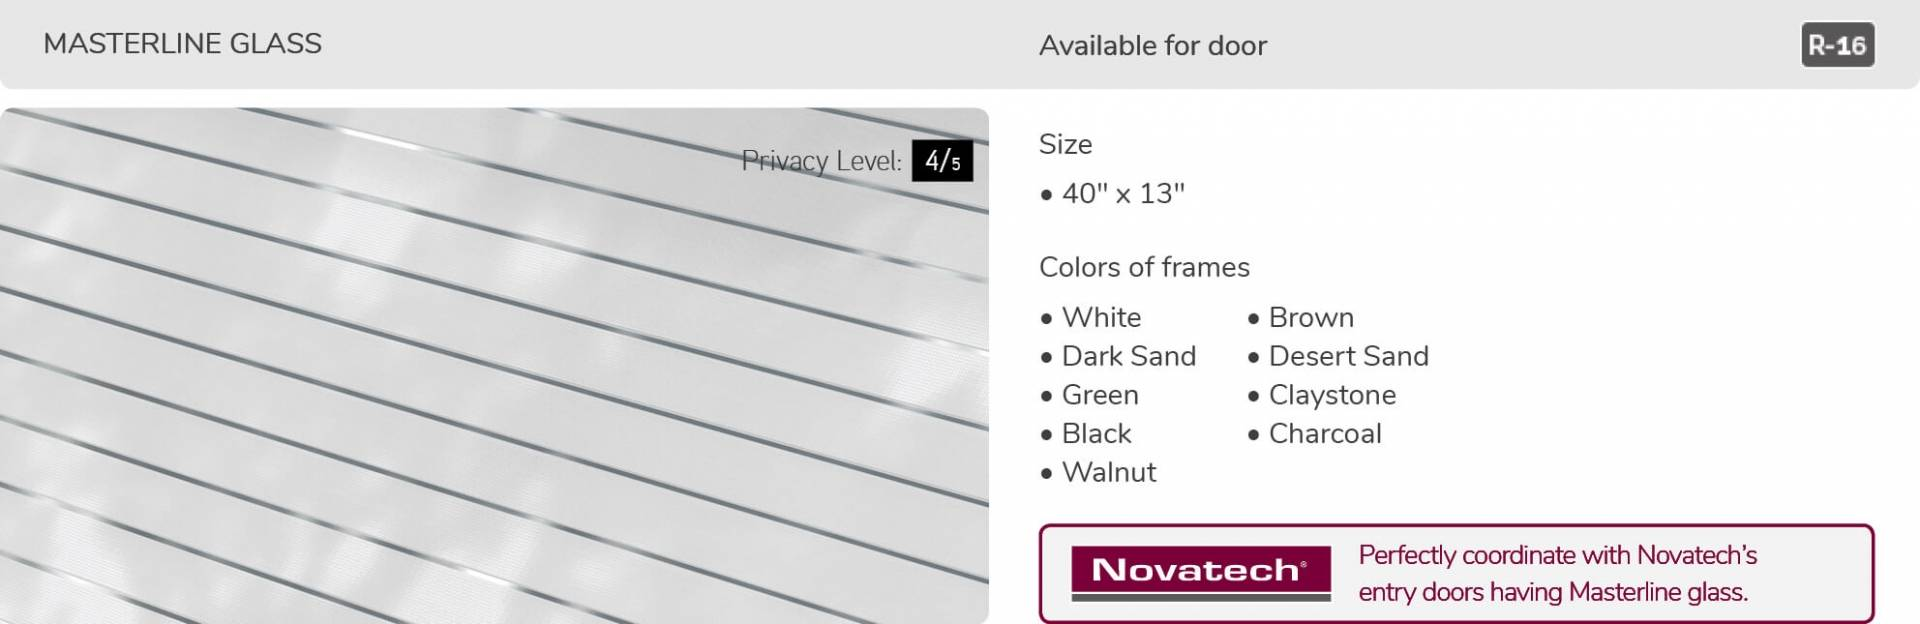 Masterline glass, 40' x 13', available for door R-16